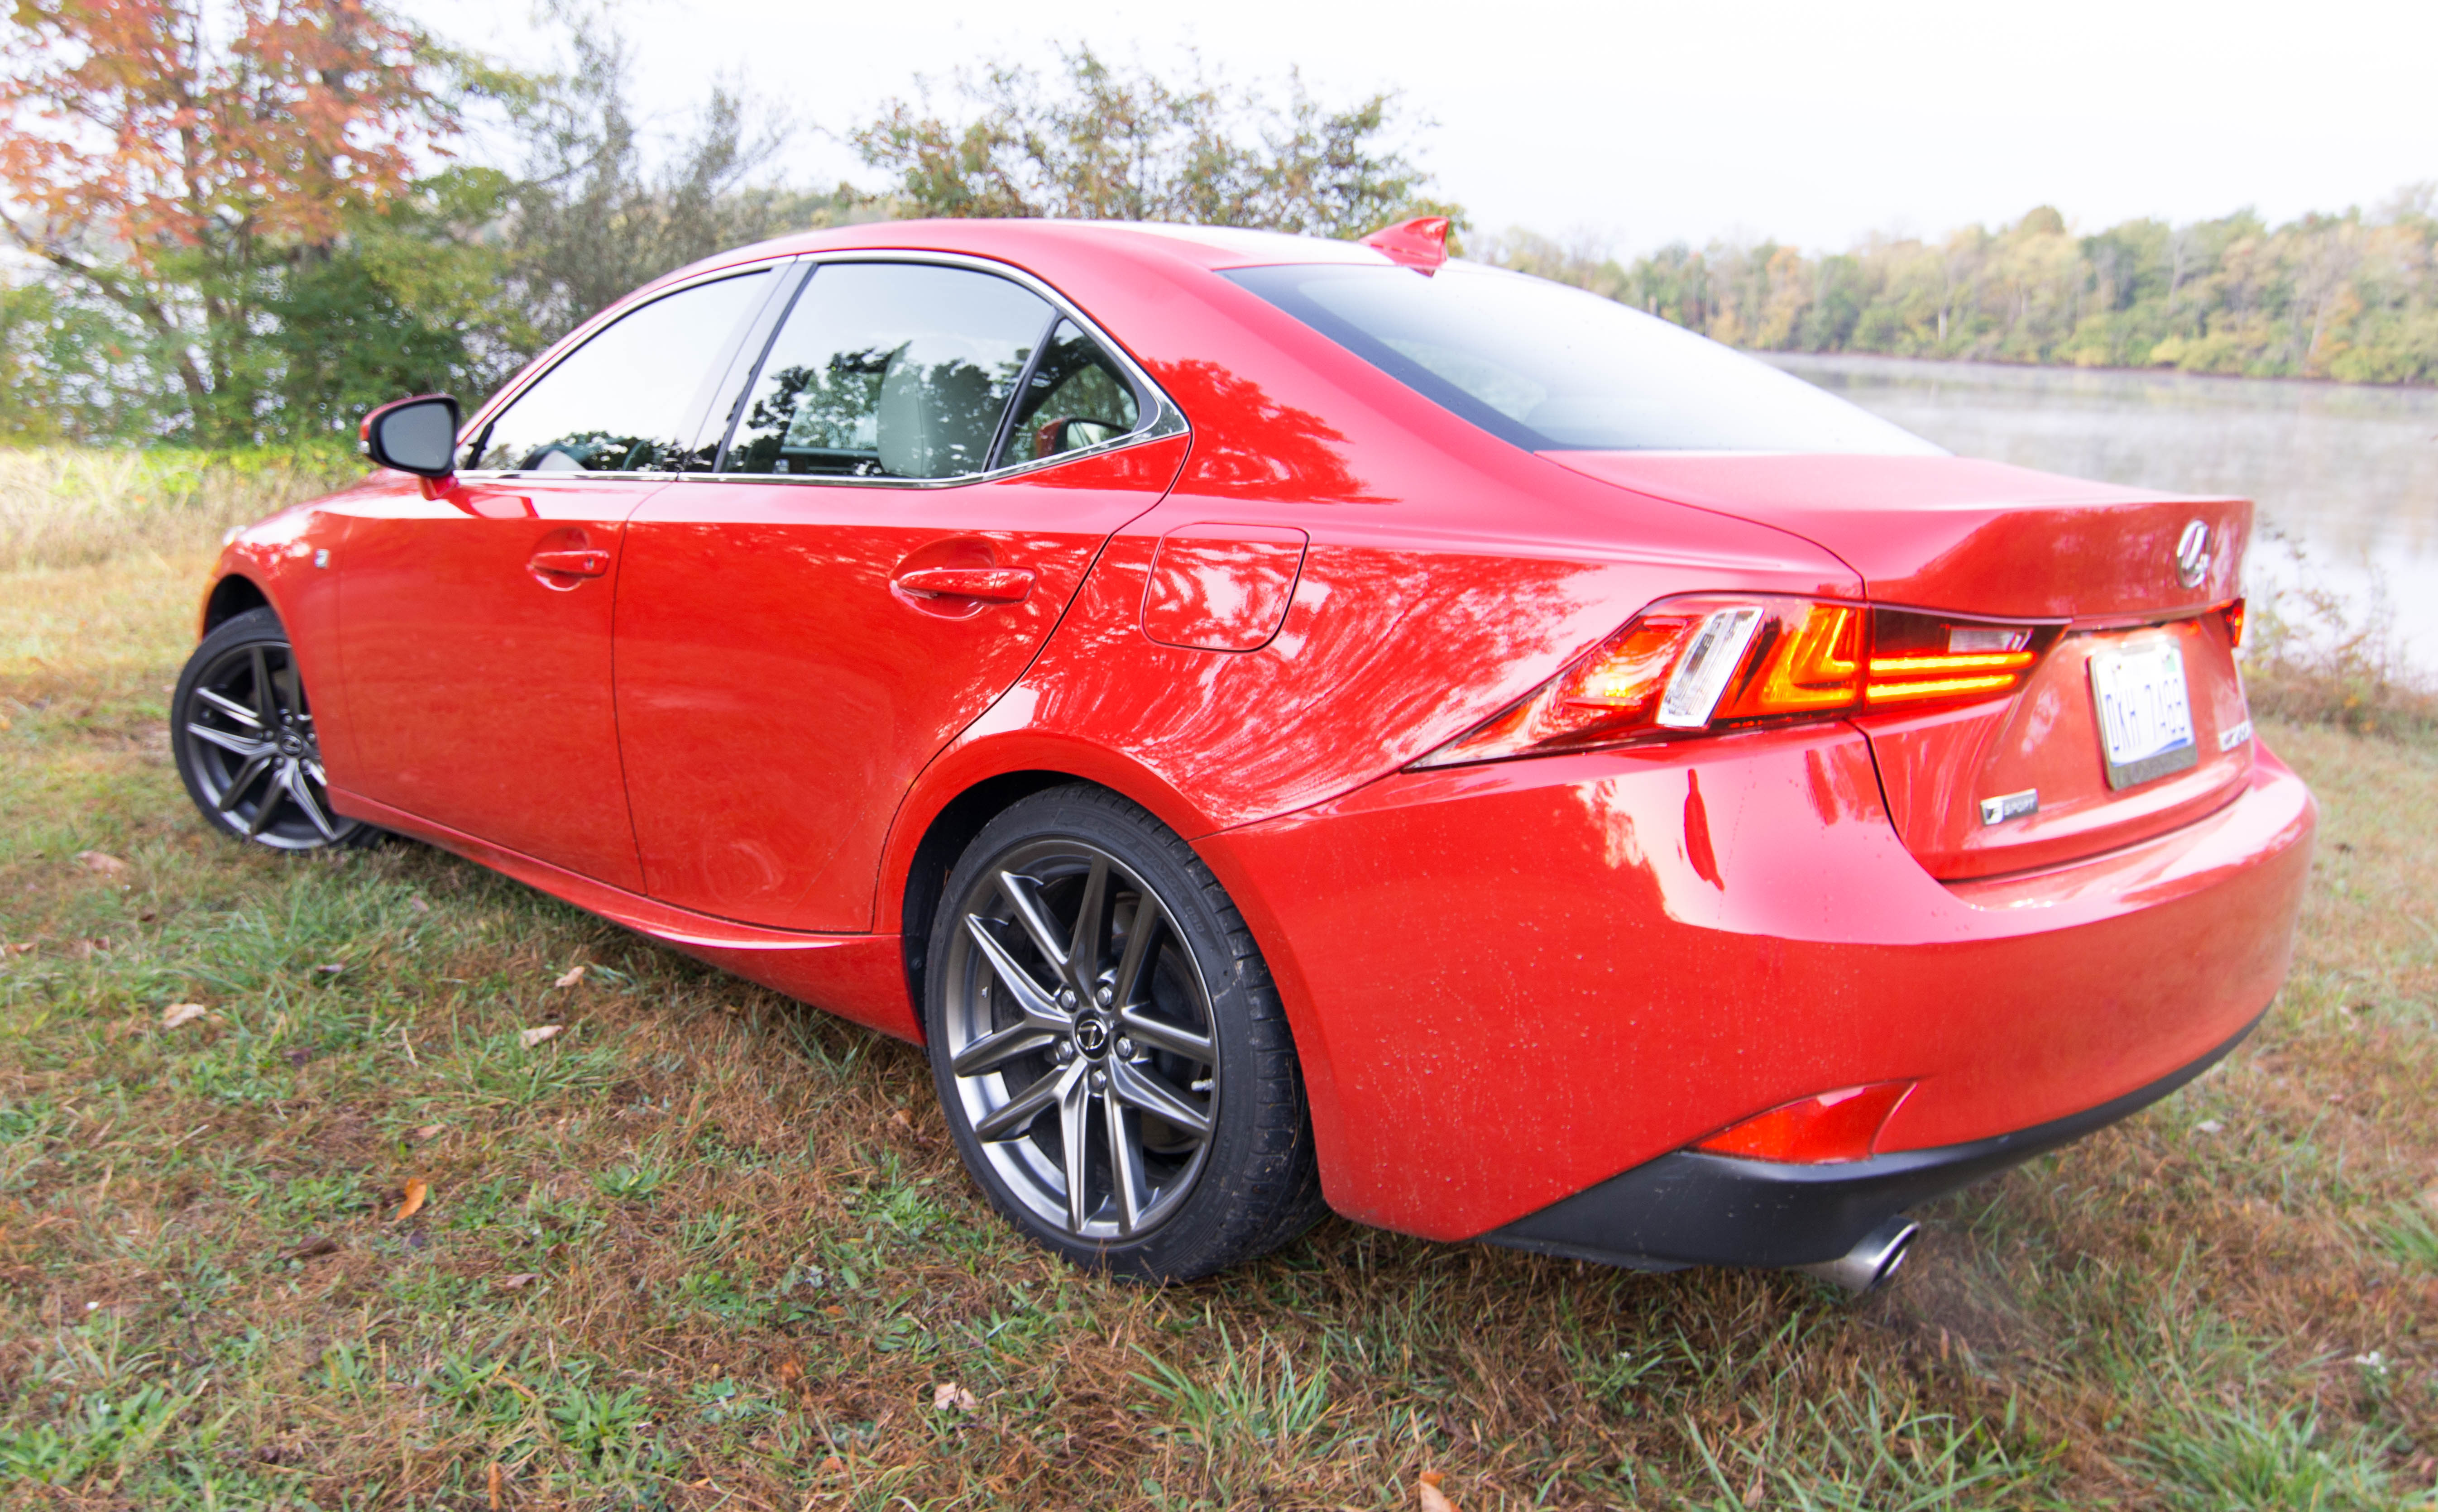 2016 lexus is200t review two holes away from greatness the truth about cars. Black Bedroom Furniture Sets. Home Design Ideas